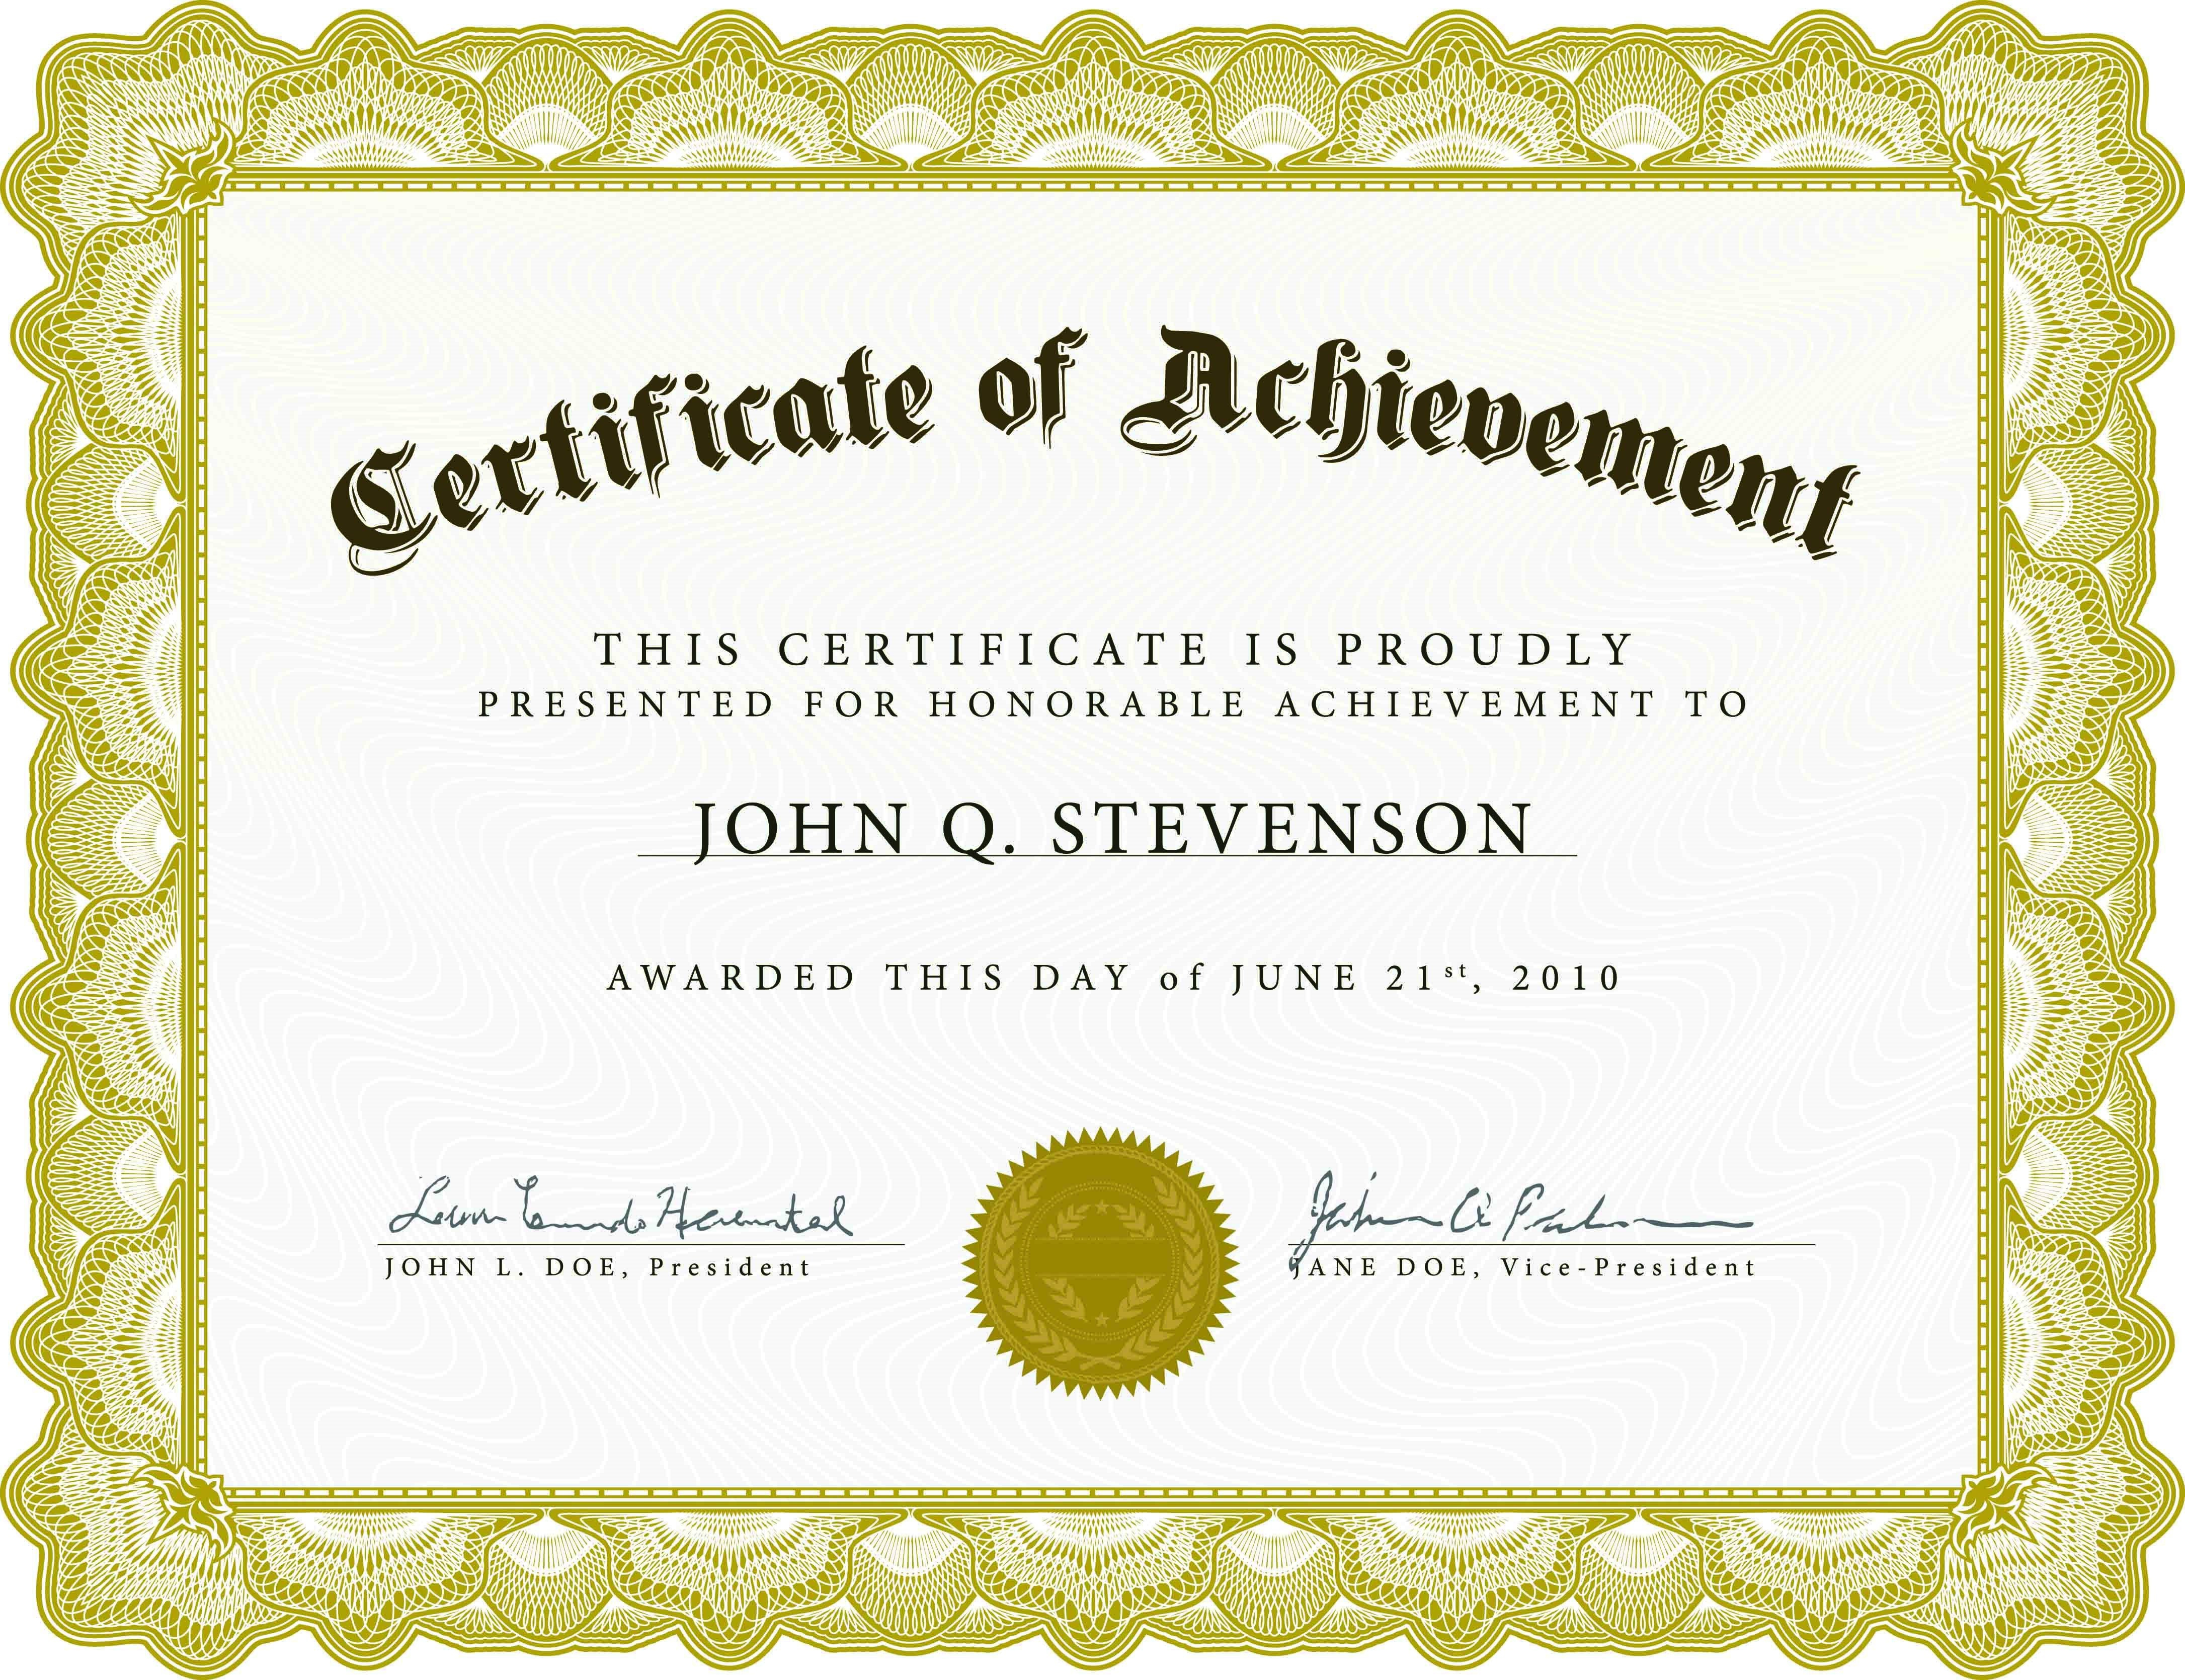 Farewell Certificate Template Archives - 10+ Professional Inside Farewell Certificate Template